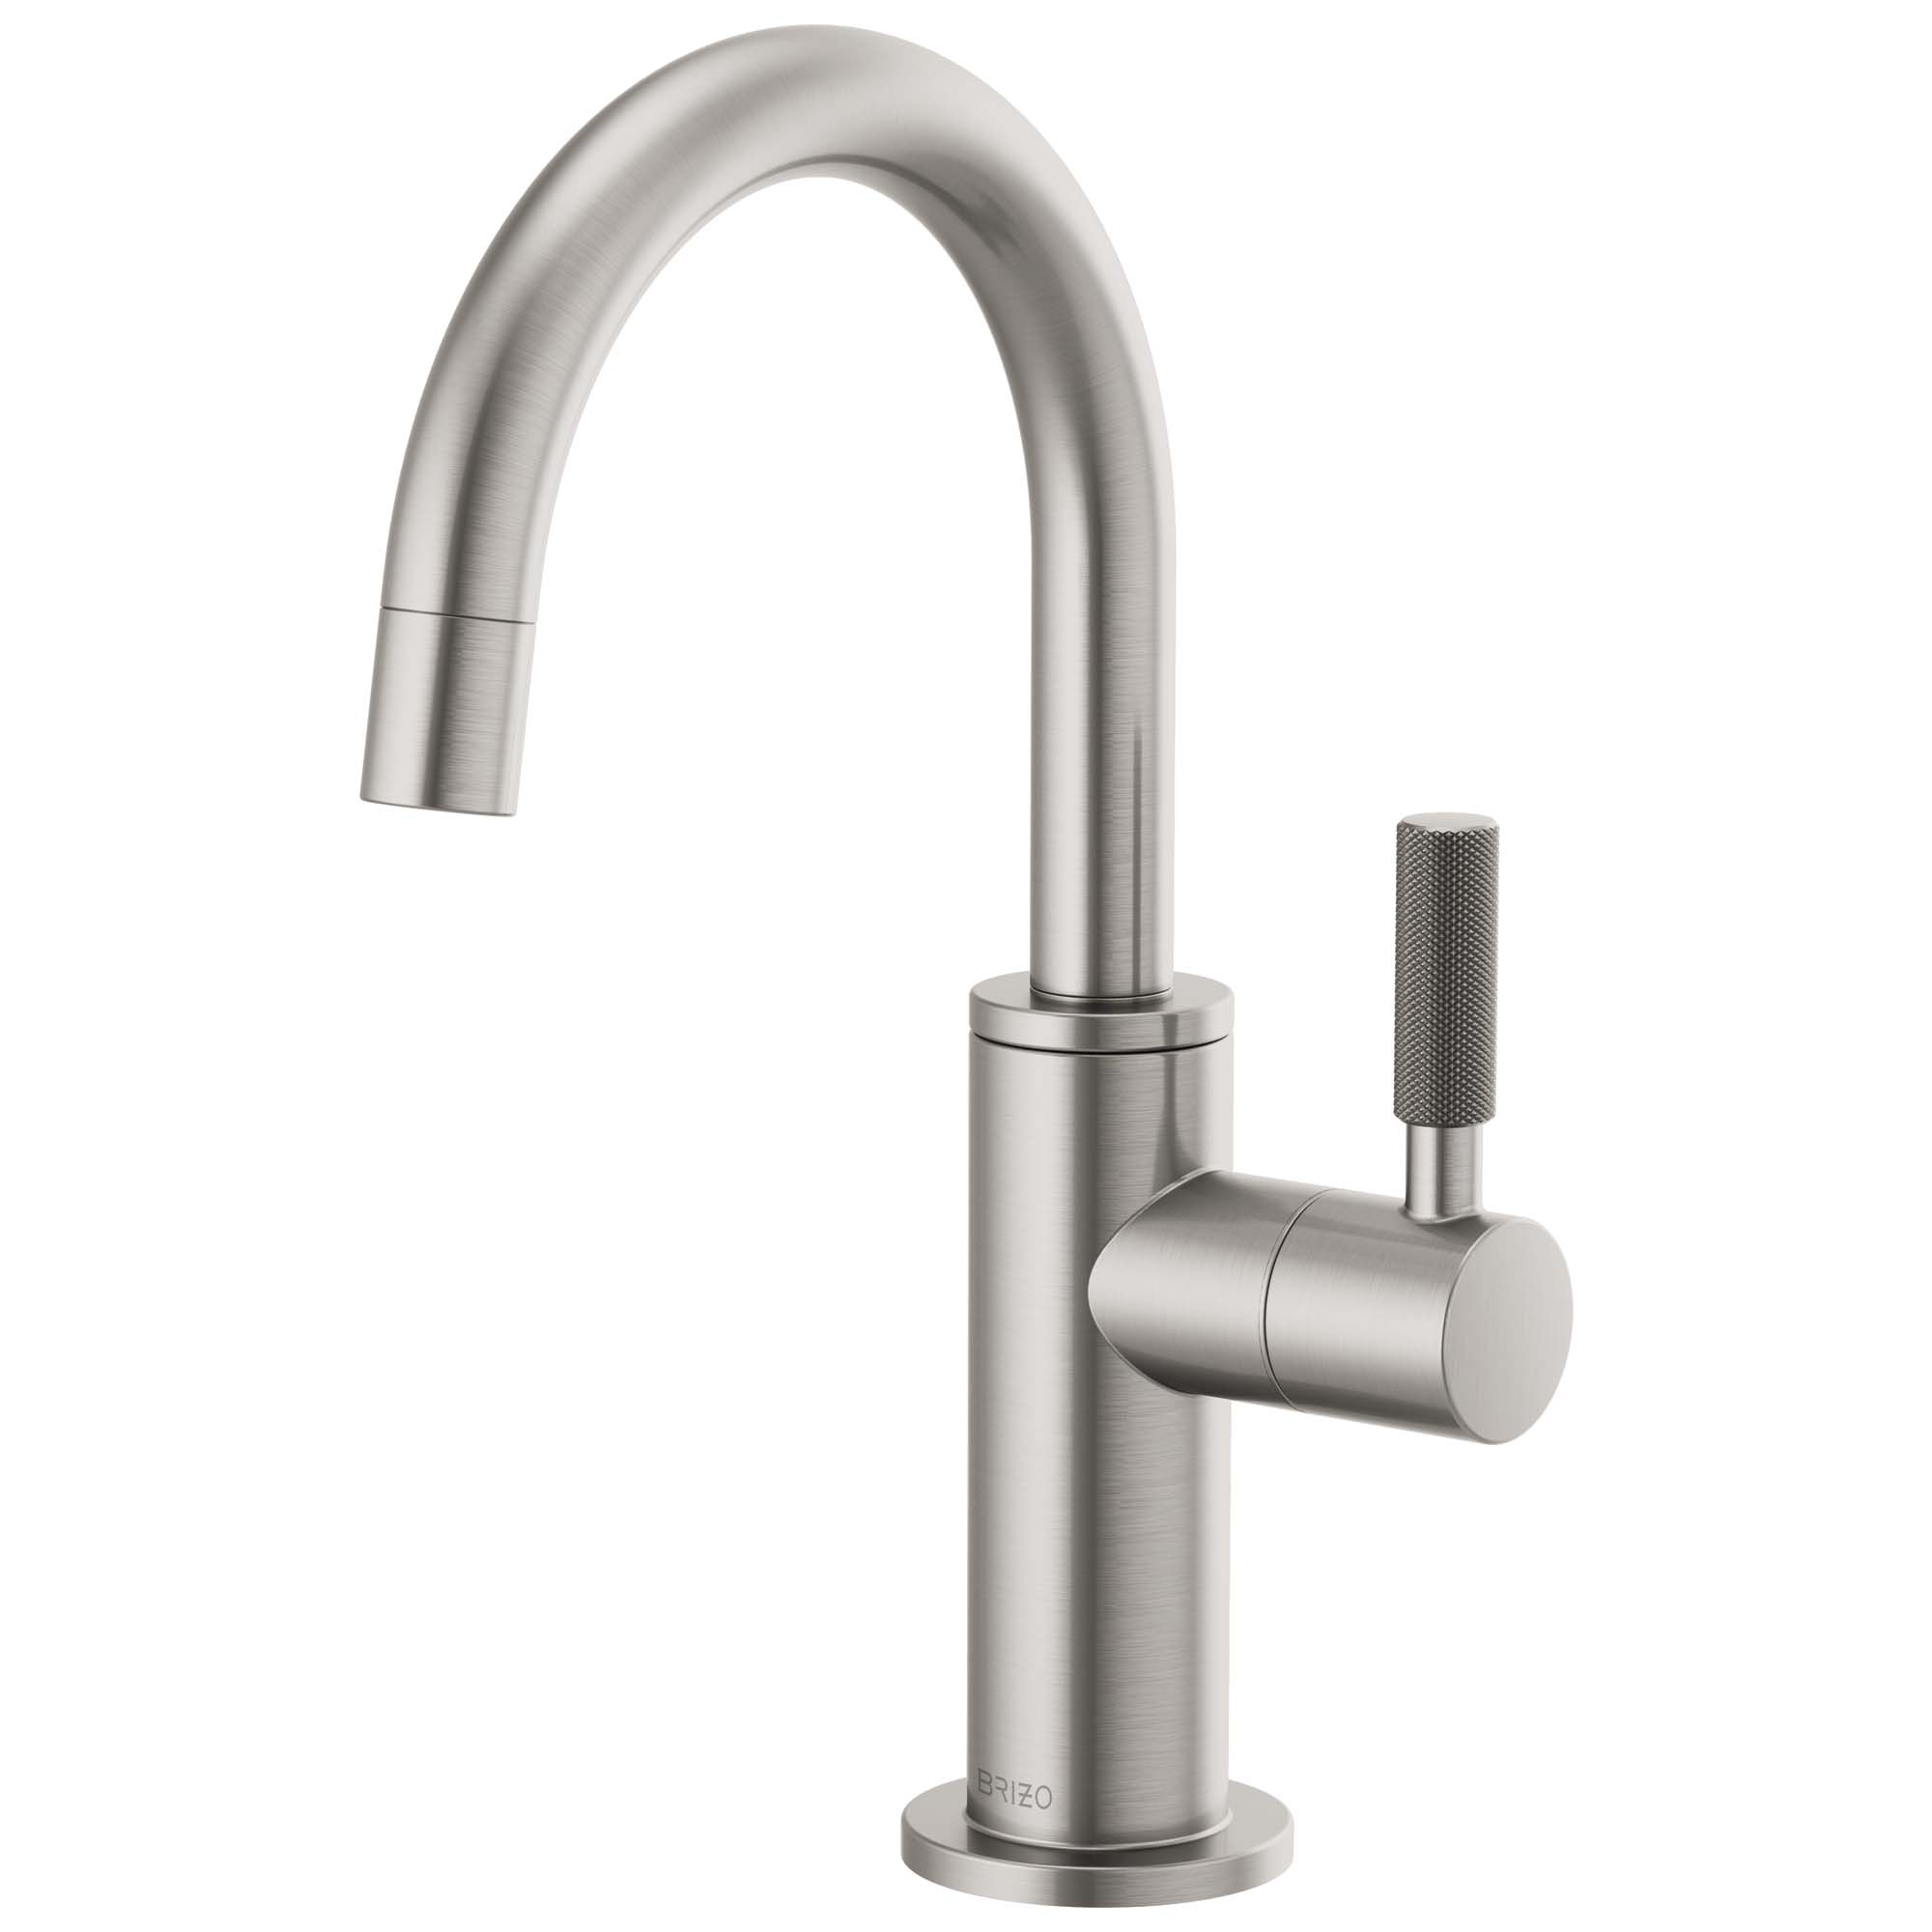 Brizo 61343LF-C-SS Litze Beverage Faucet with Arc Spout and Knurled Handle - Stainless